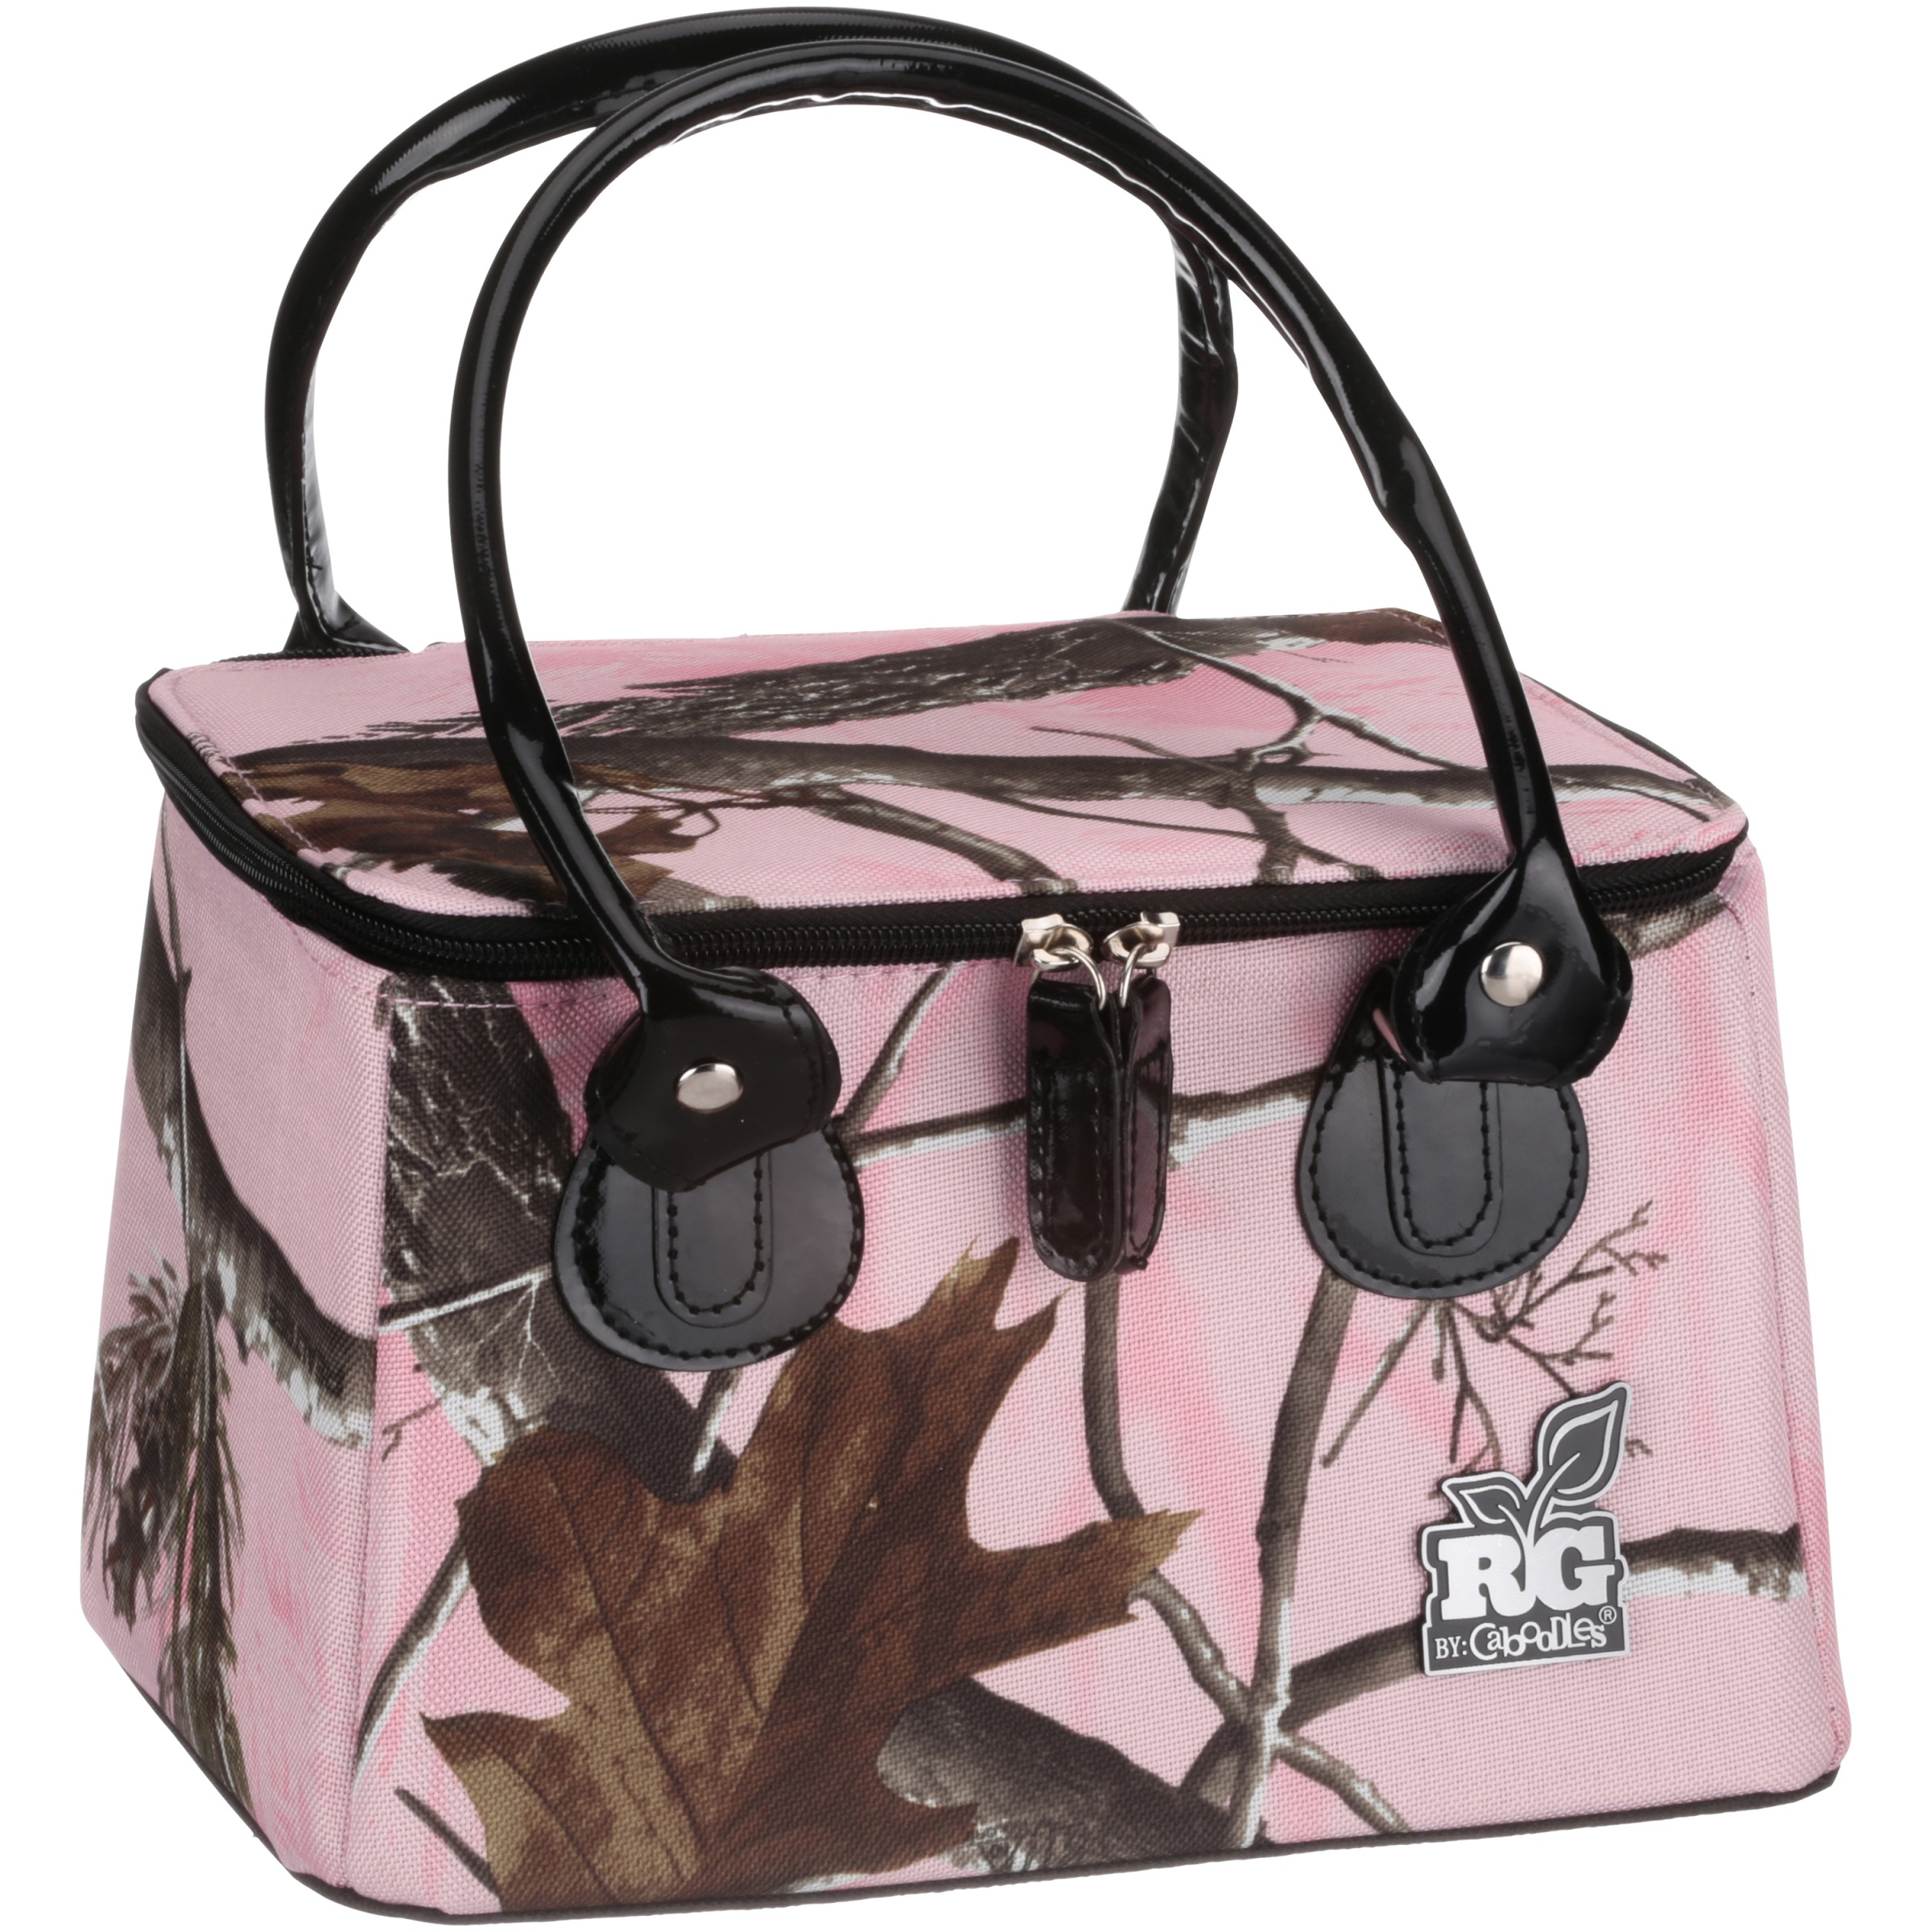 Realtree™ RG Caboodles® Tapered Tote